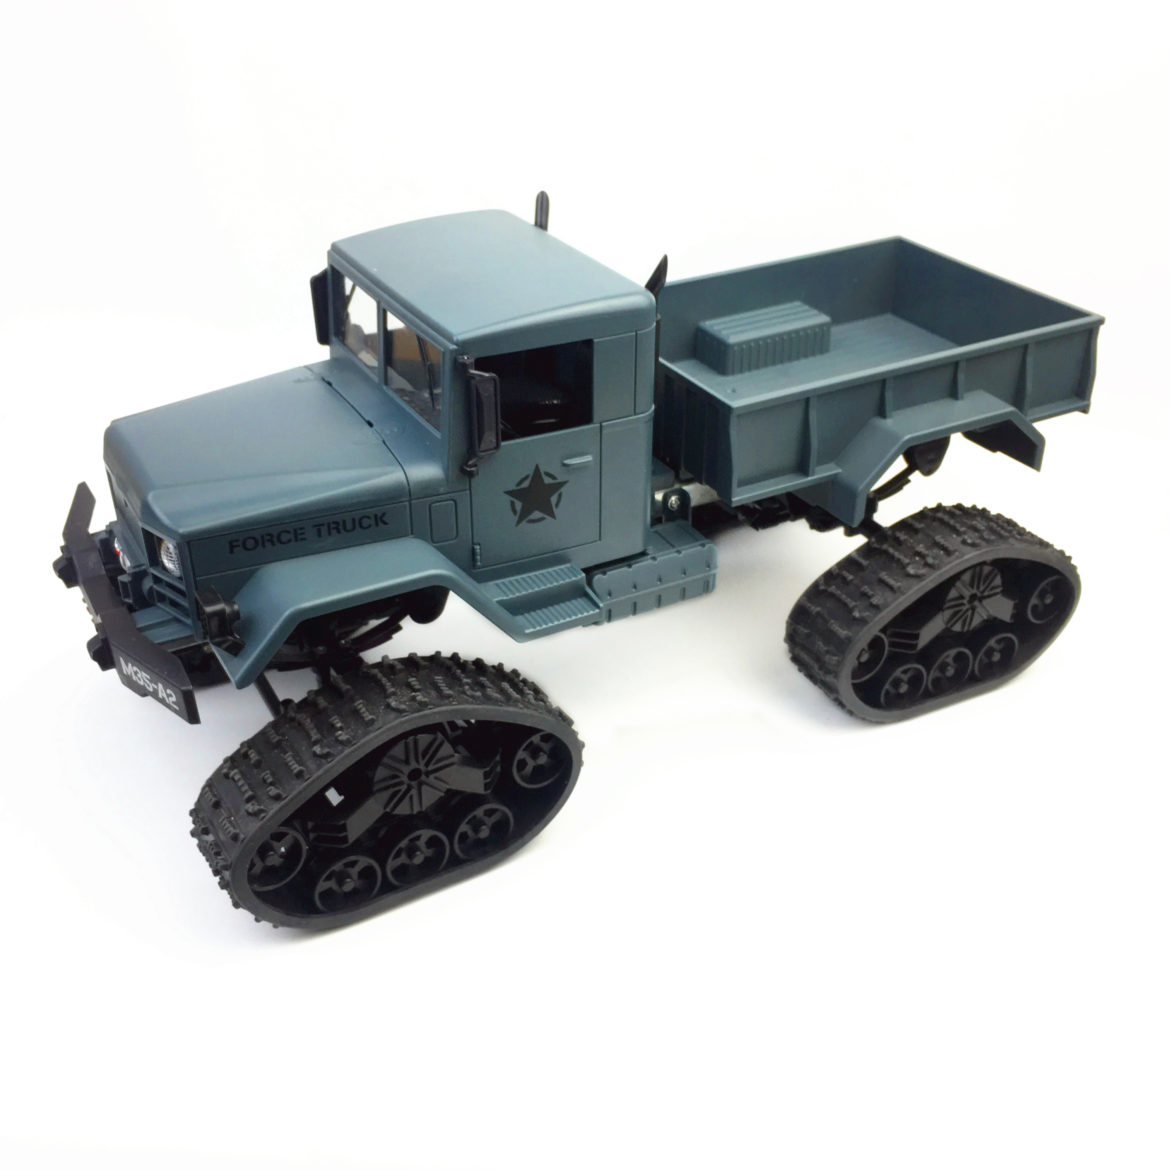 All-terrain rubber track wheel robot chassis military truck